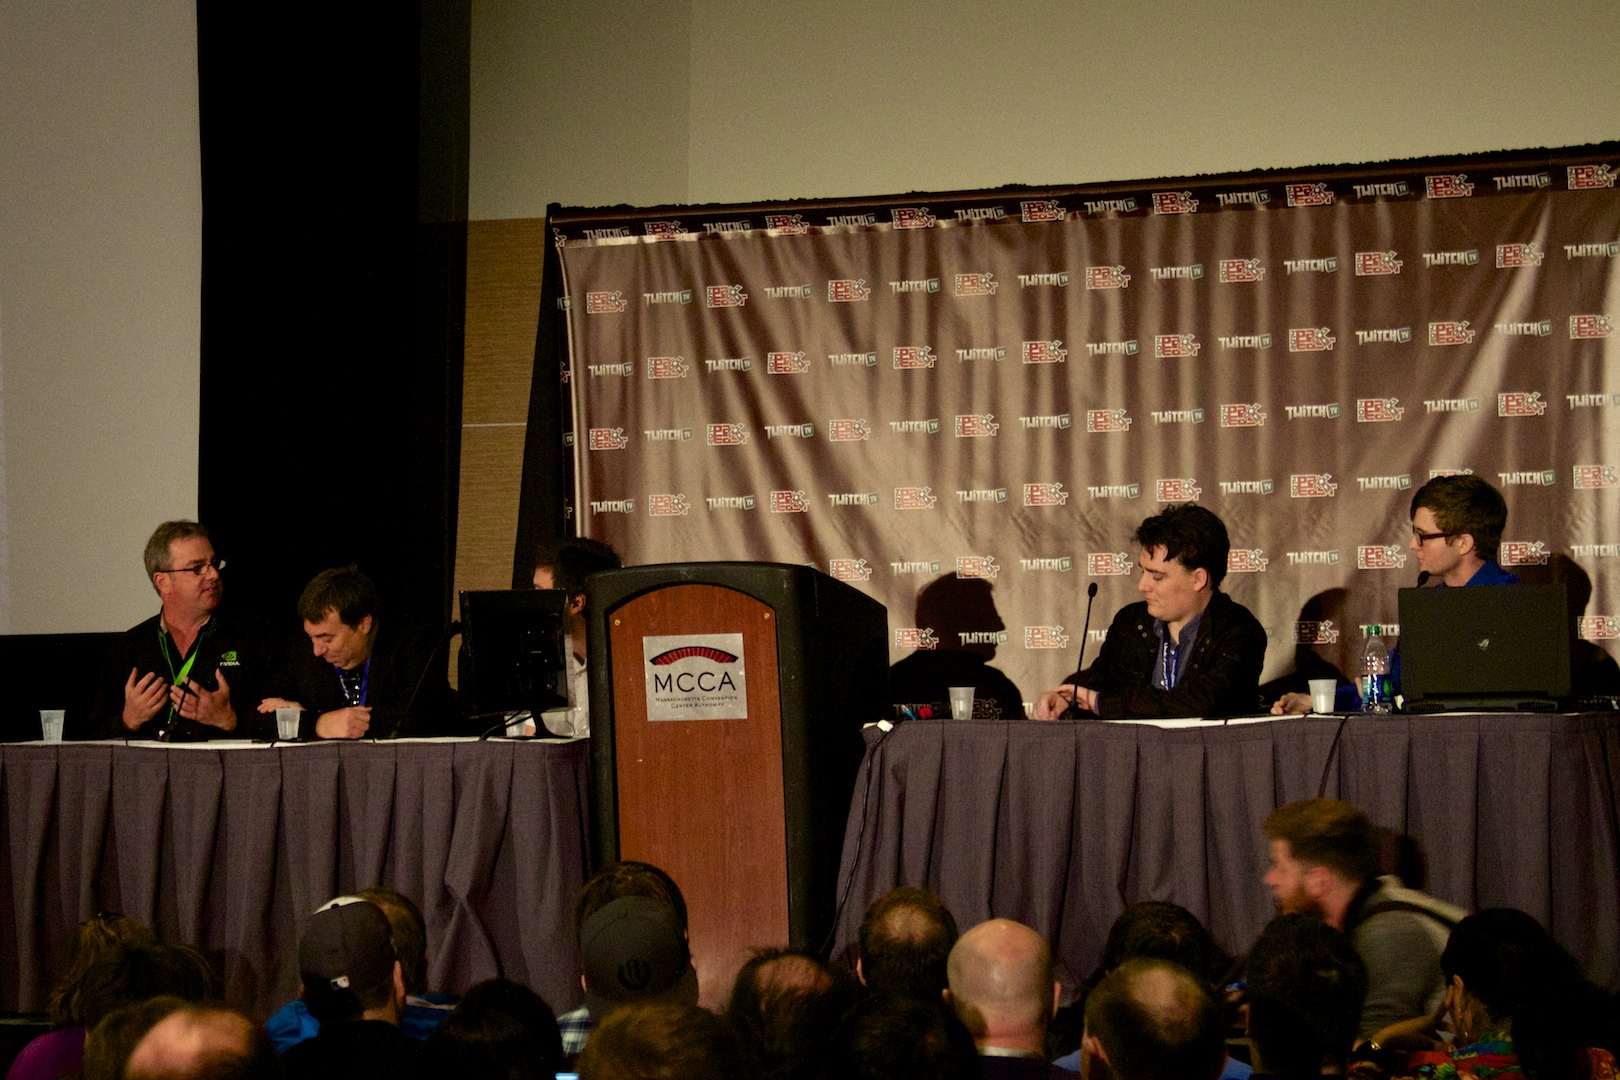 The panel, with Higby's face partially obscured by a monitor.